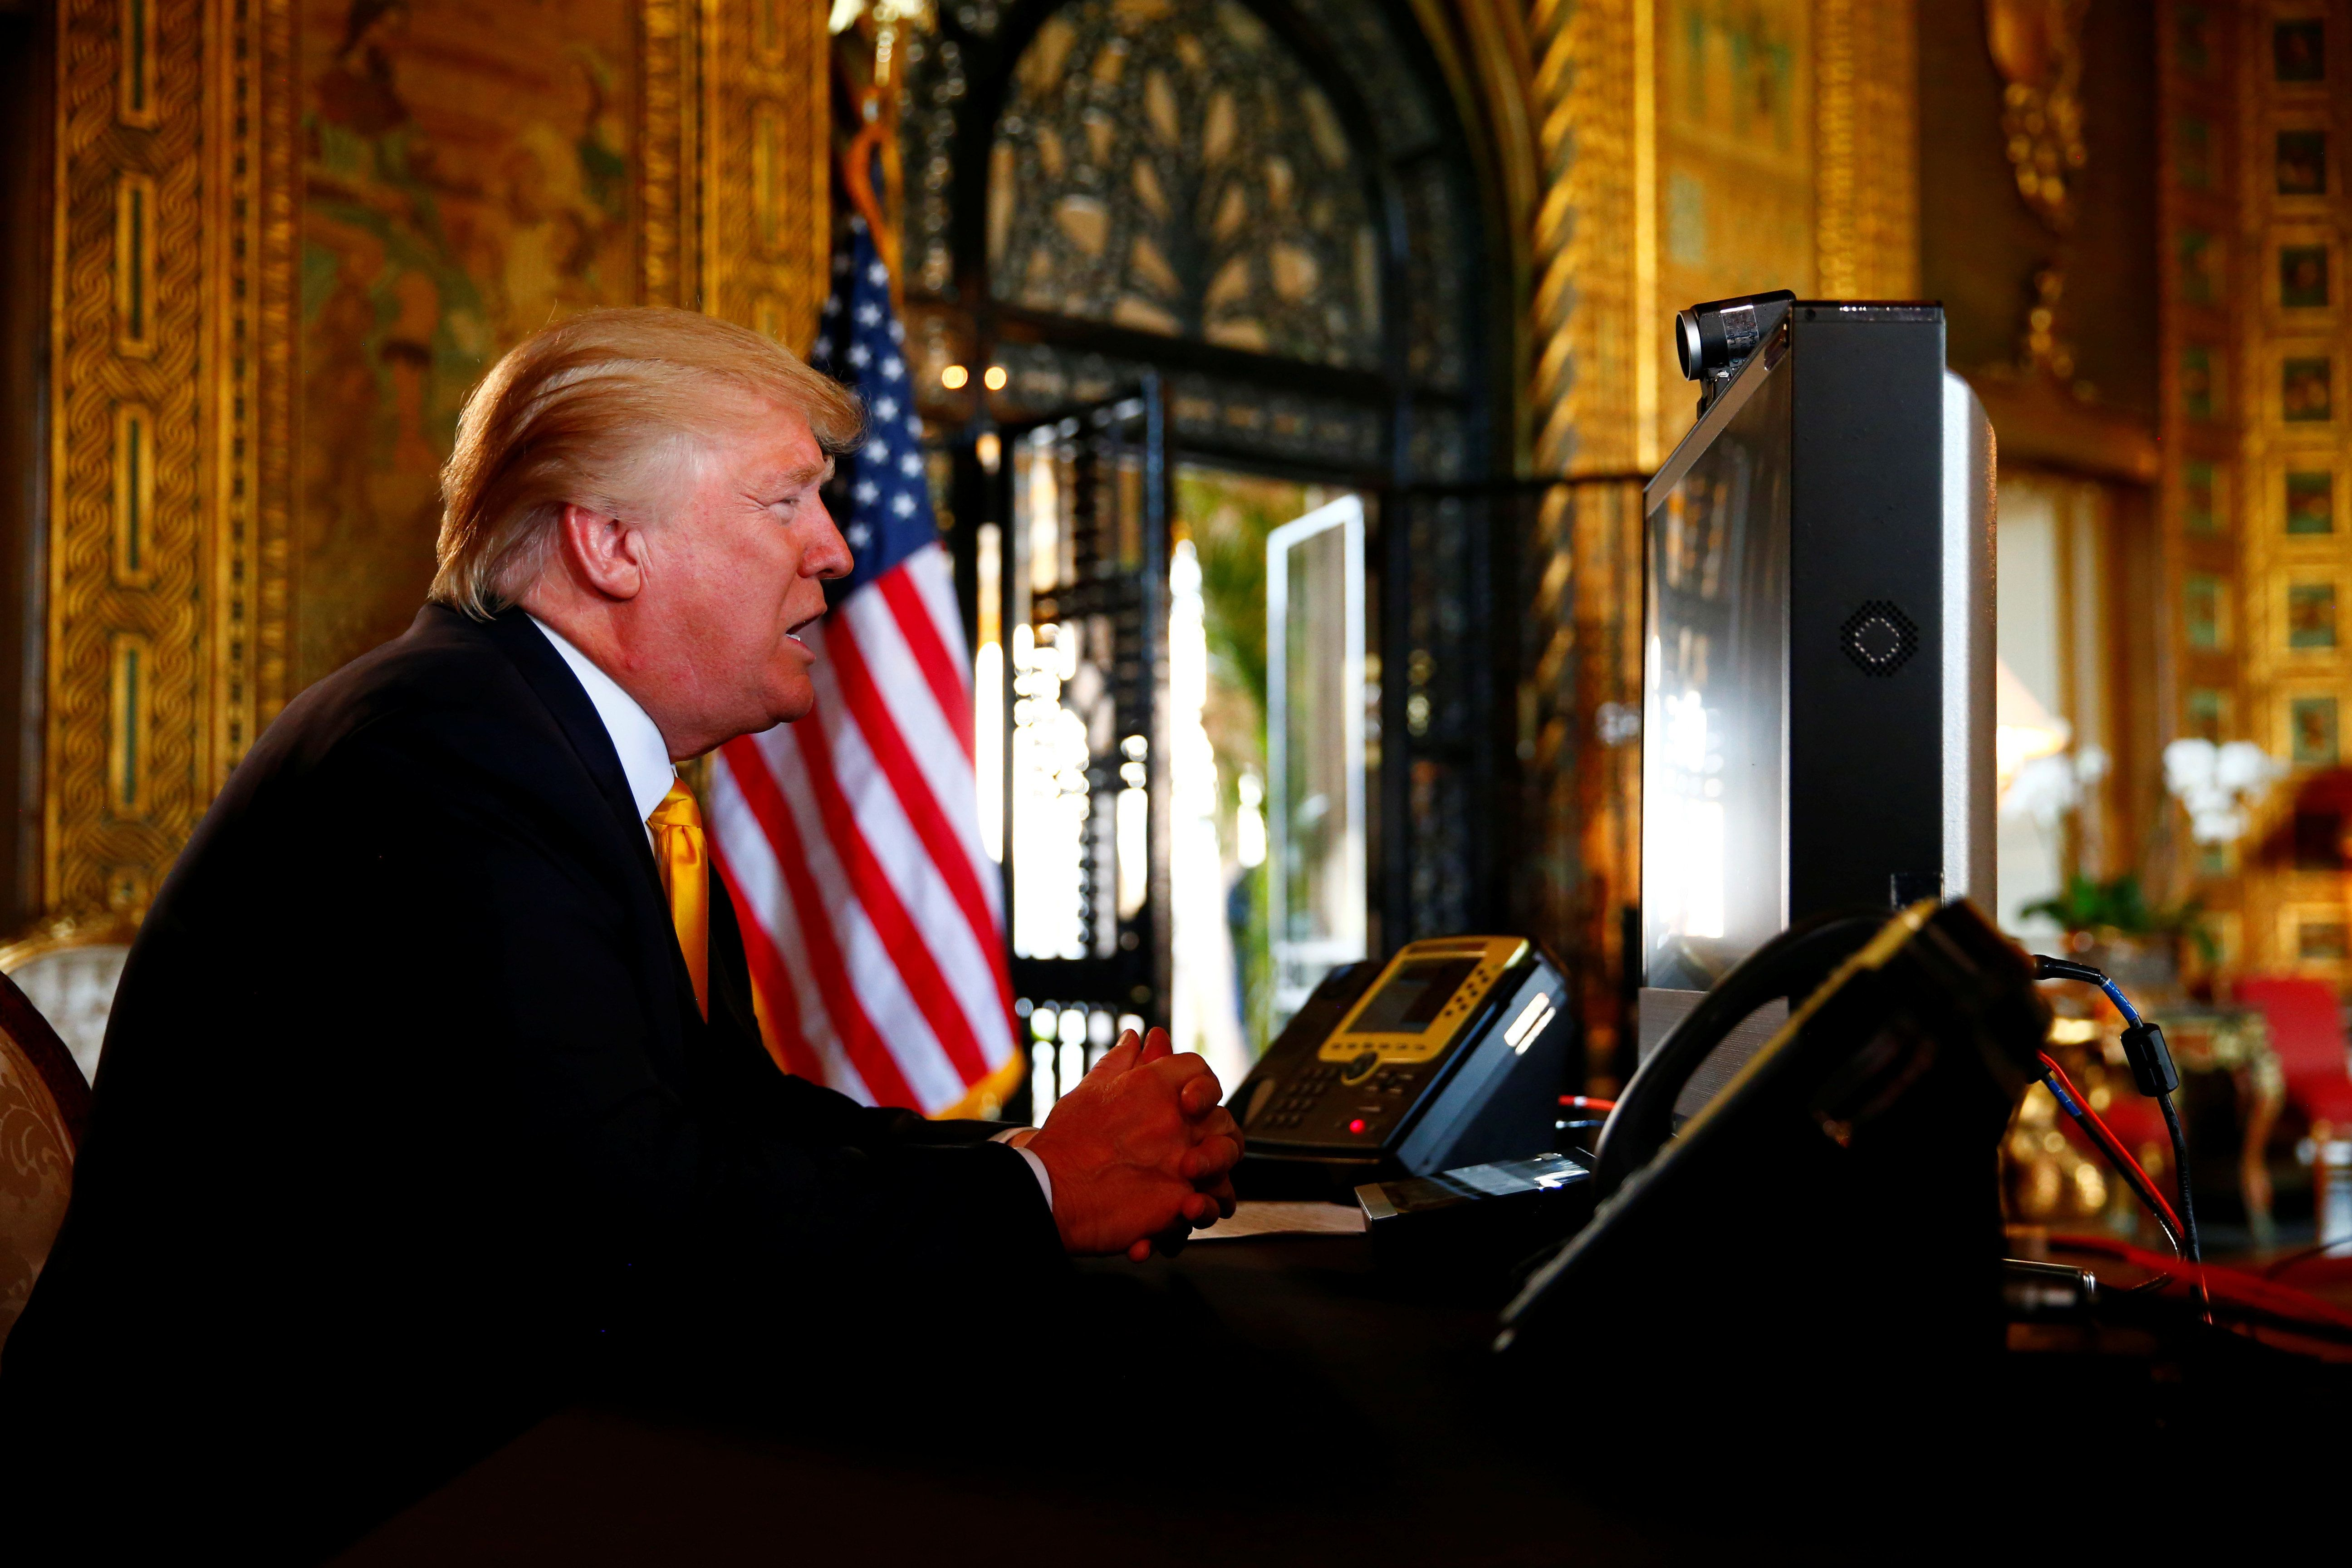 U.S. President Donald Trump speaks via video teleconference with troops from Mar-a-Lago estate in Palm Beach, Florida, U.S., November 23, 2017. REUTERS/Eric Thayer